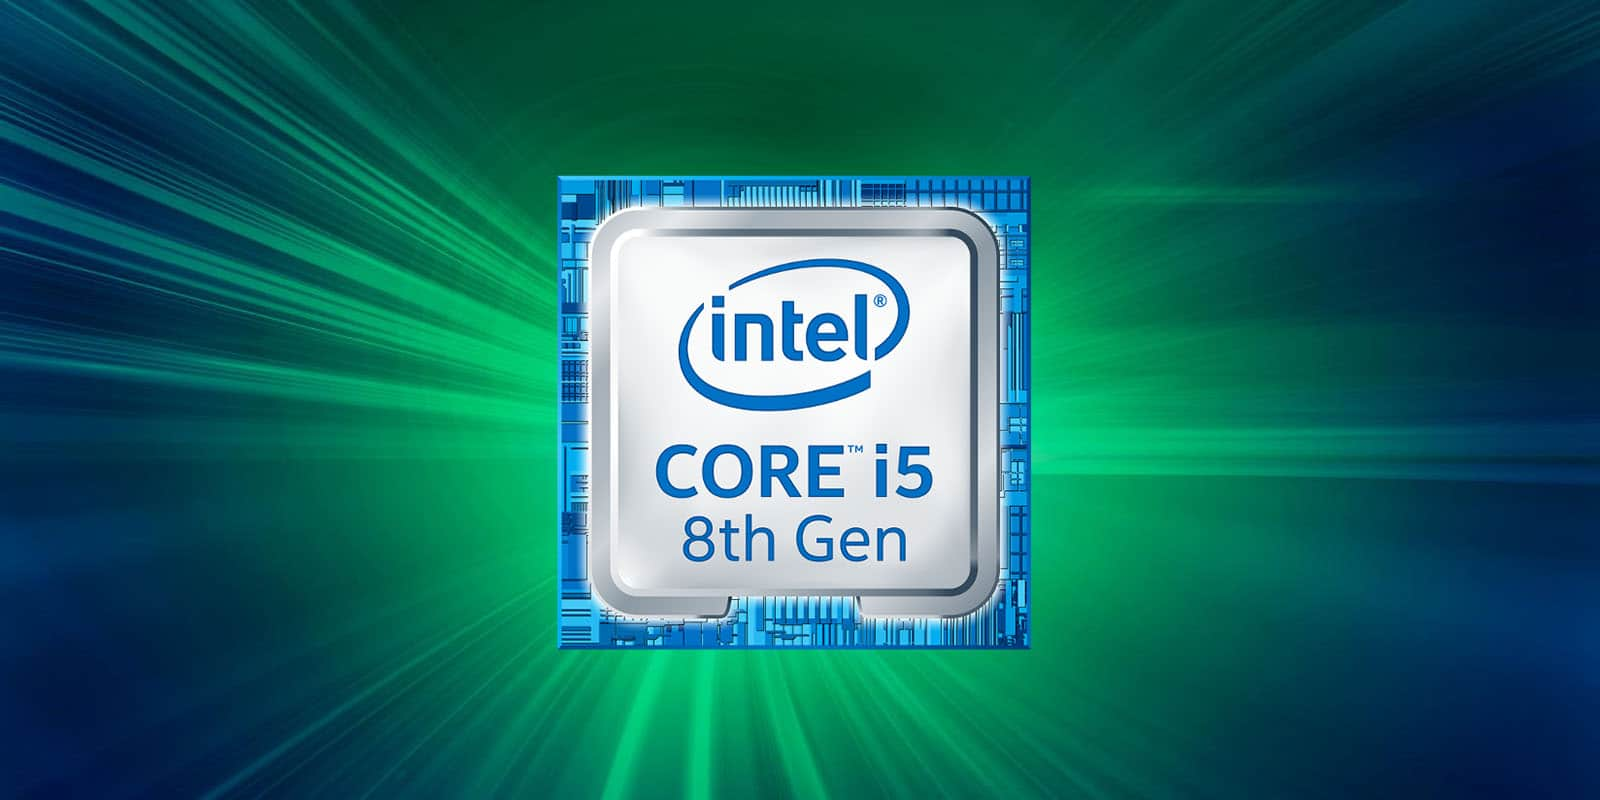 intel core i5-8250u processor featured